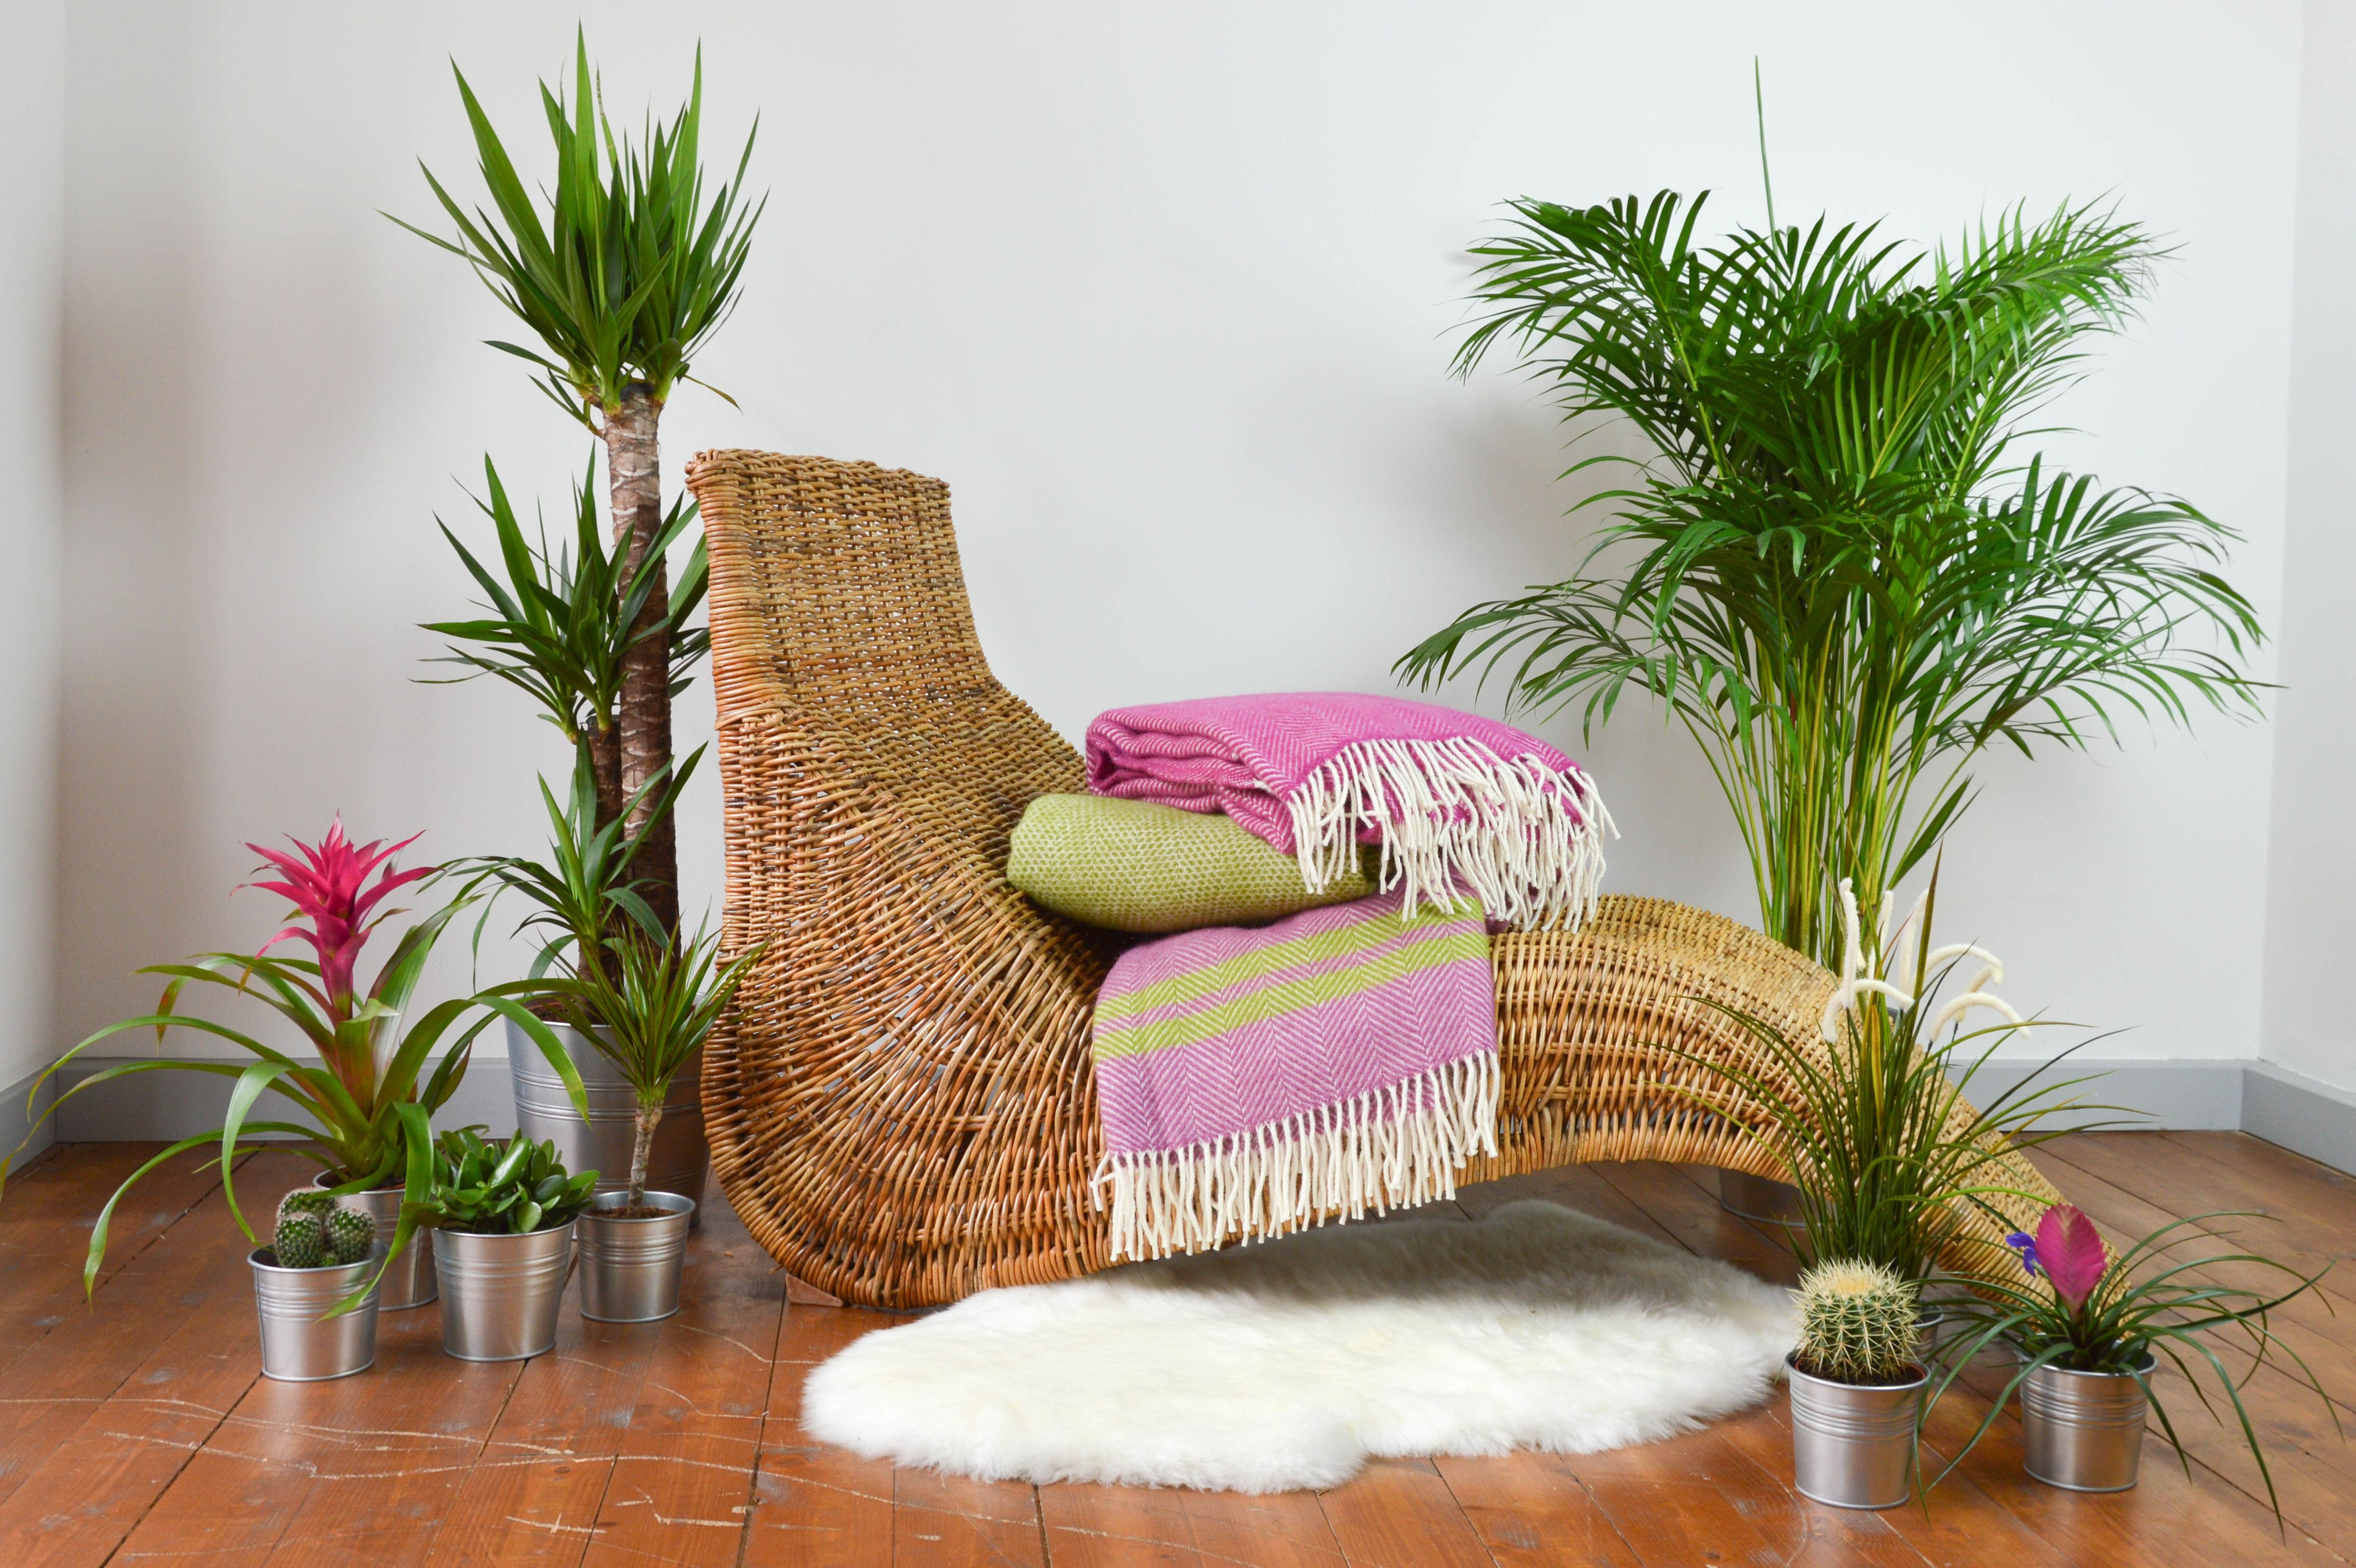 Tropical Lifestyle | The Tartan Blanket Co.